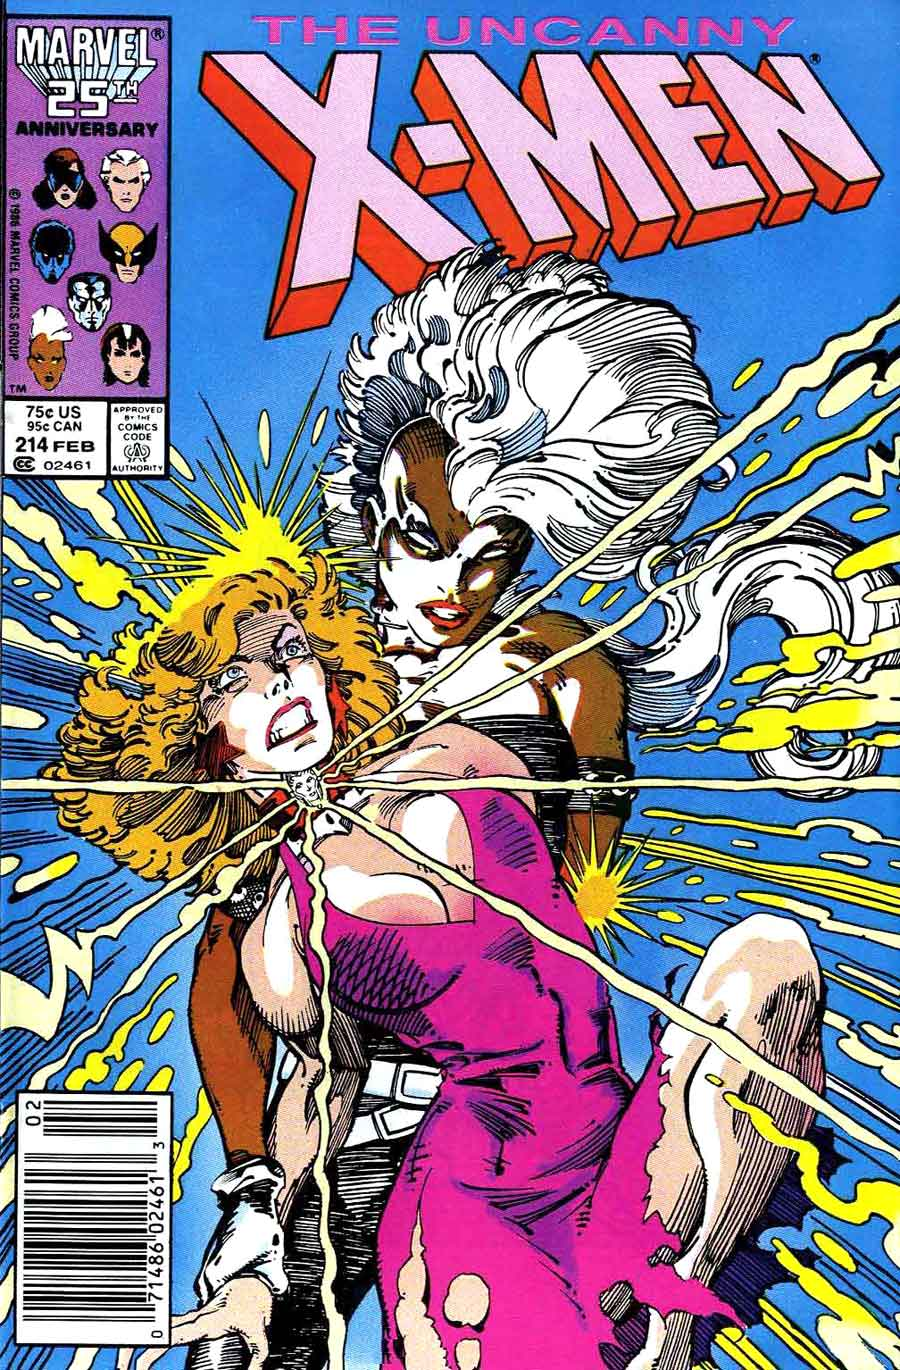 X-men v1 #214 marvel comic book cover art by Barry Windsor Smith